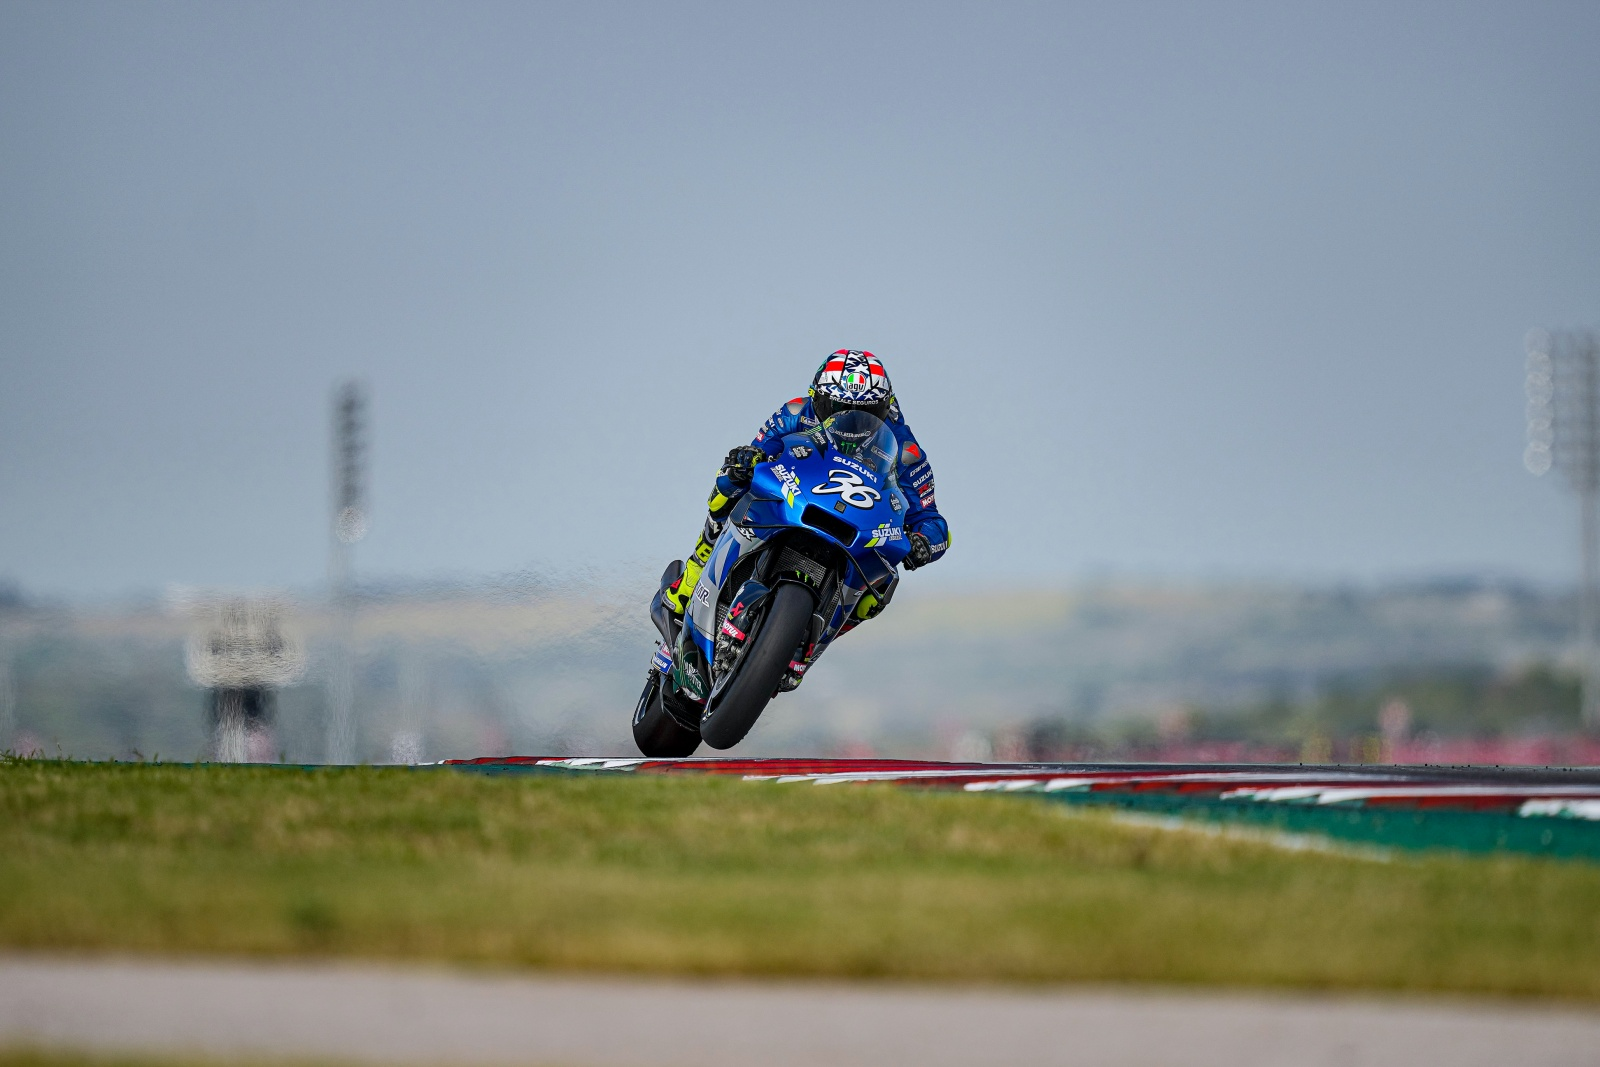 RINS BRINGS HOME FOURTH ON RETURN TO TAXING TEXAN GP